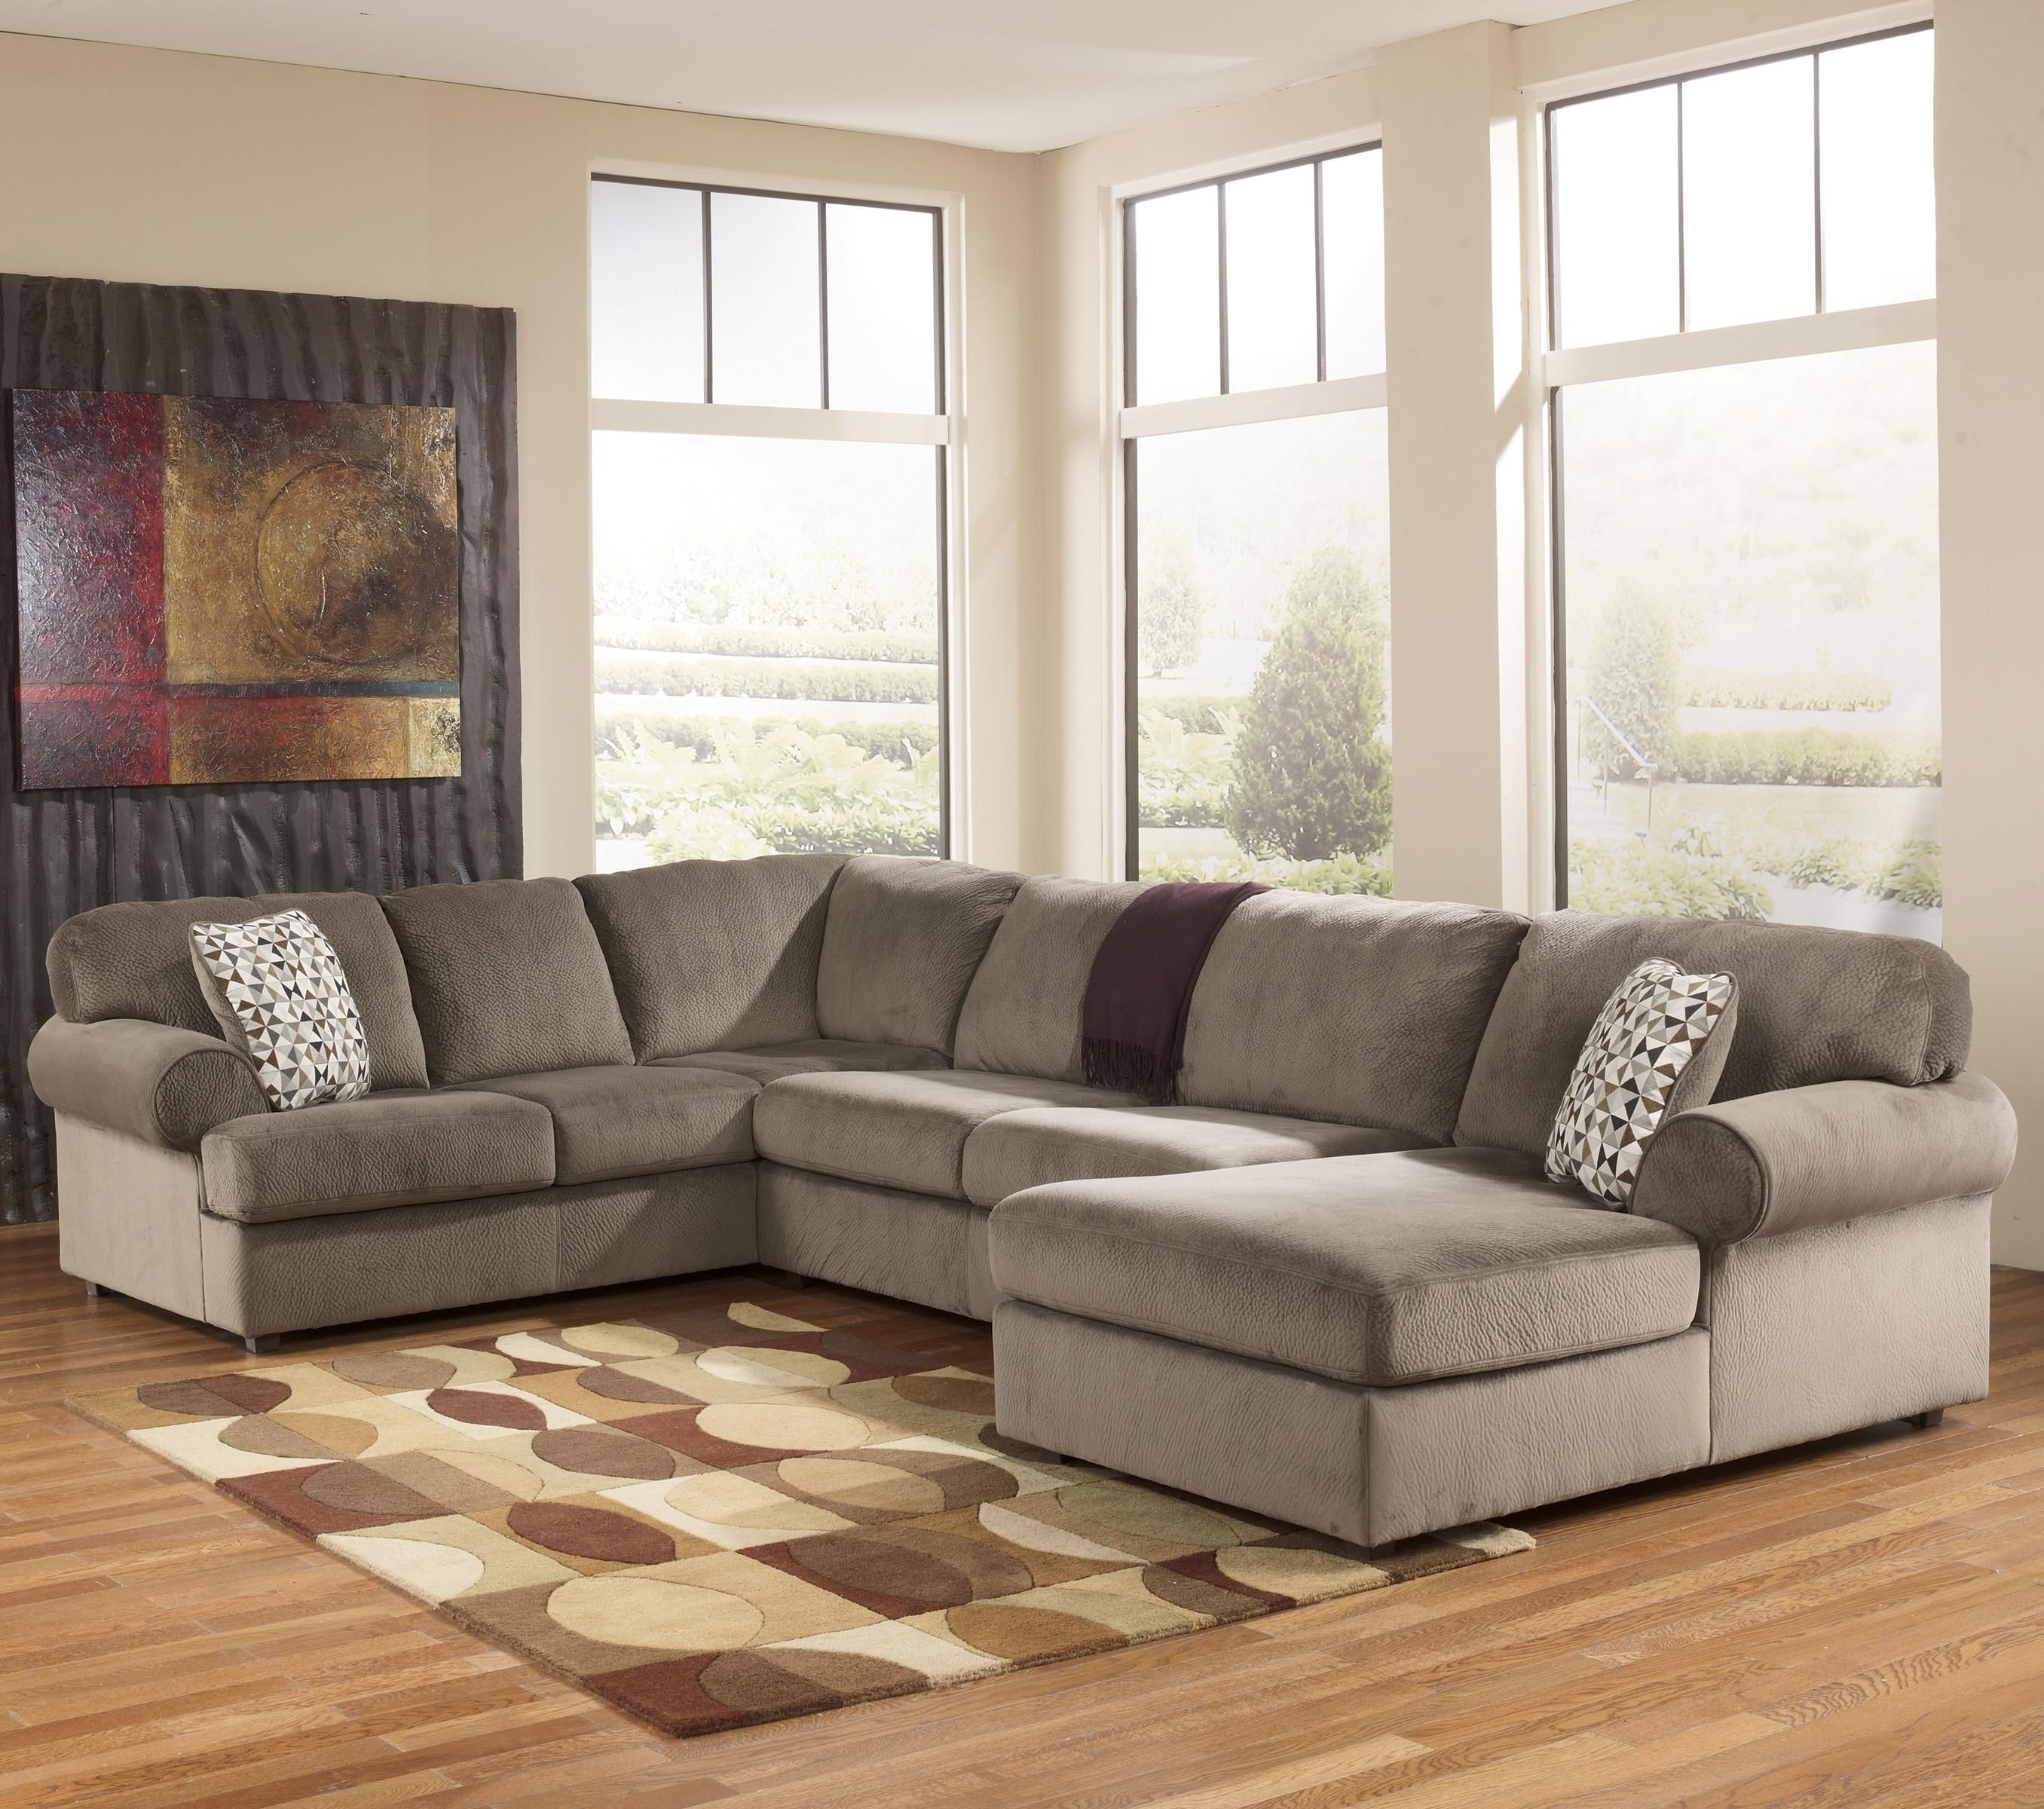 Attrayant Jessa Place   Dune Casual Sectional Sofa With Right Chaise By Signature  Design By Ashley